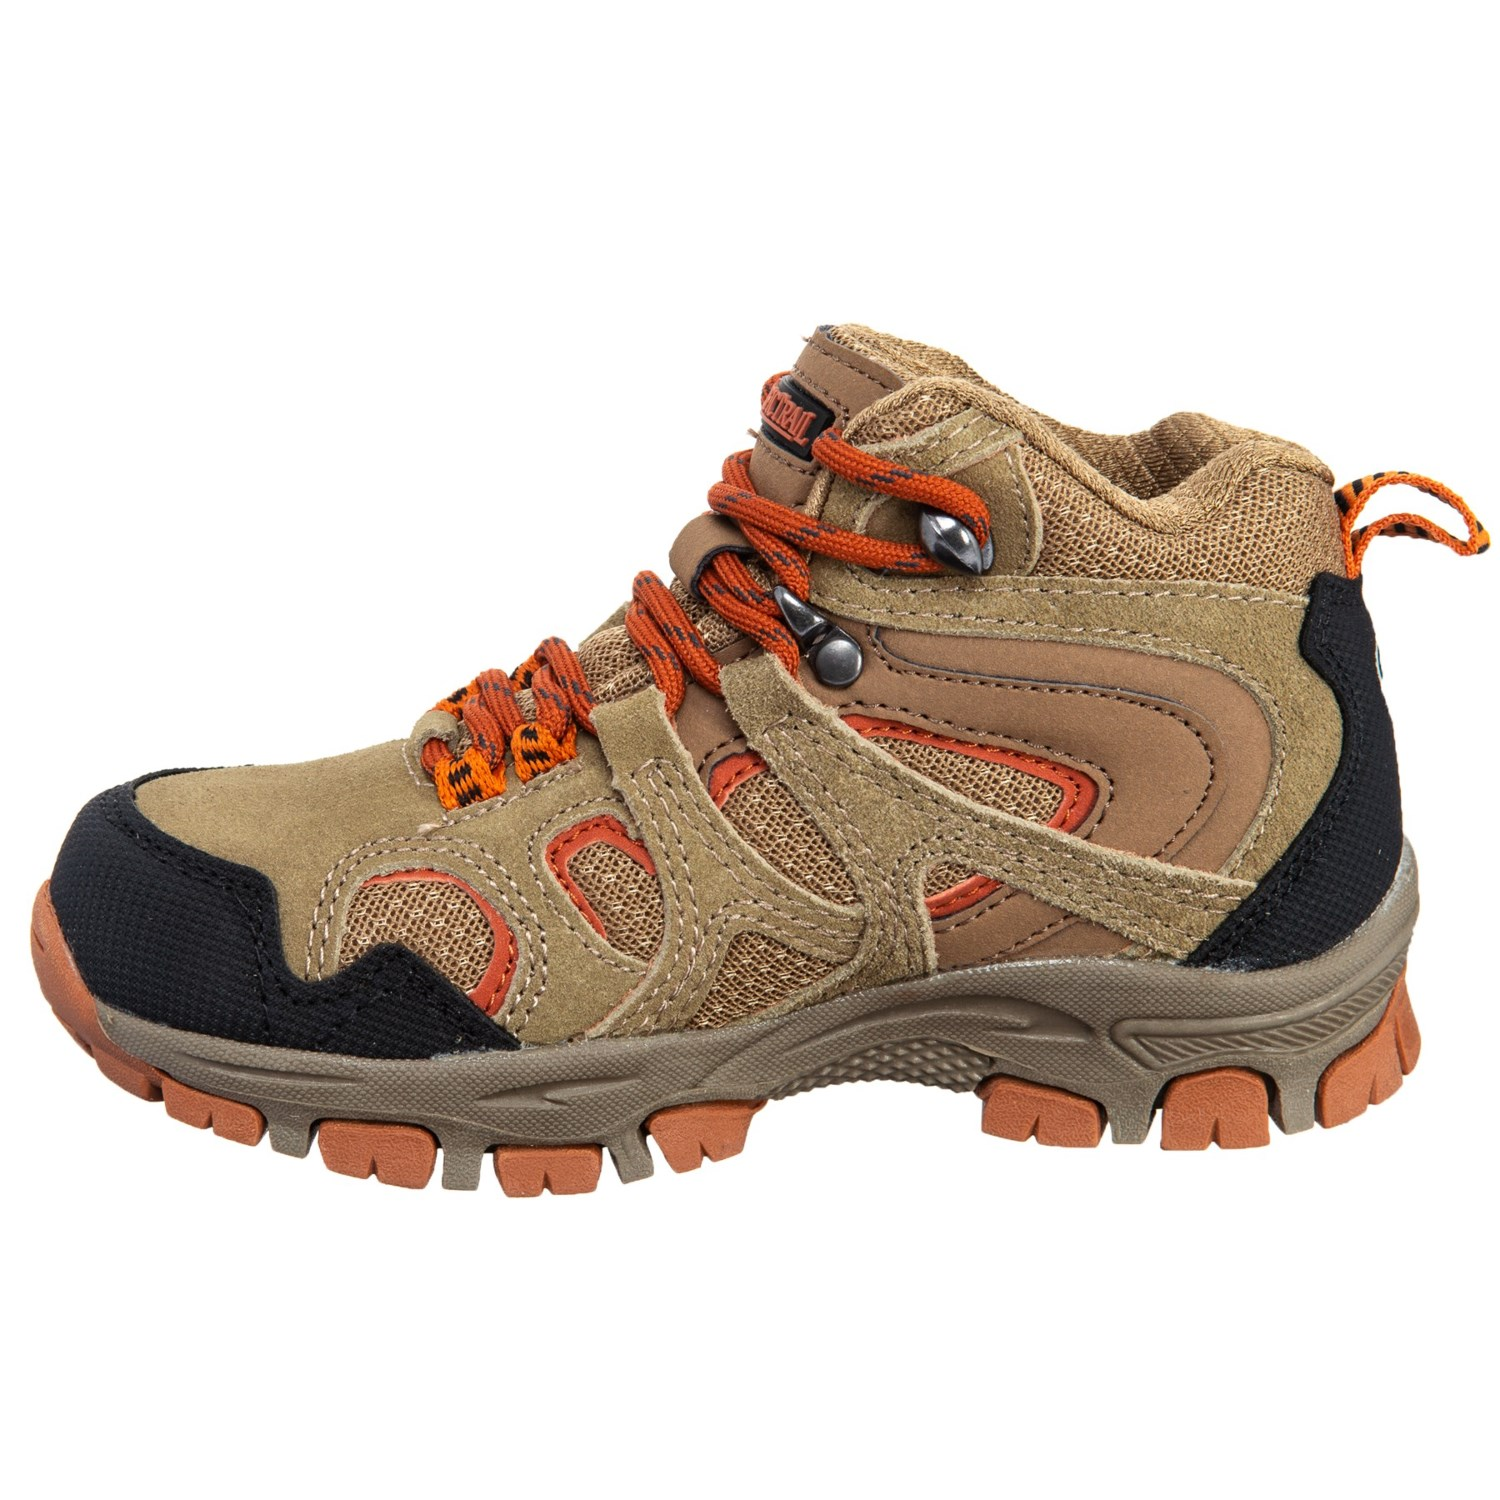 82582c51dd7 Pacific Trail Diller Jr. Mid Hiking Boots (For Boys) - Save 49%